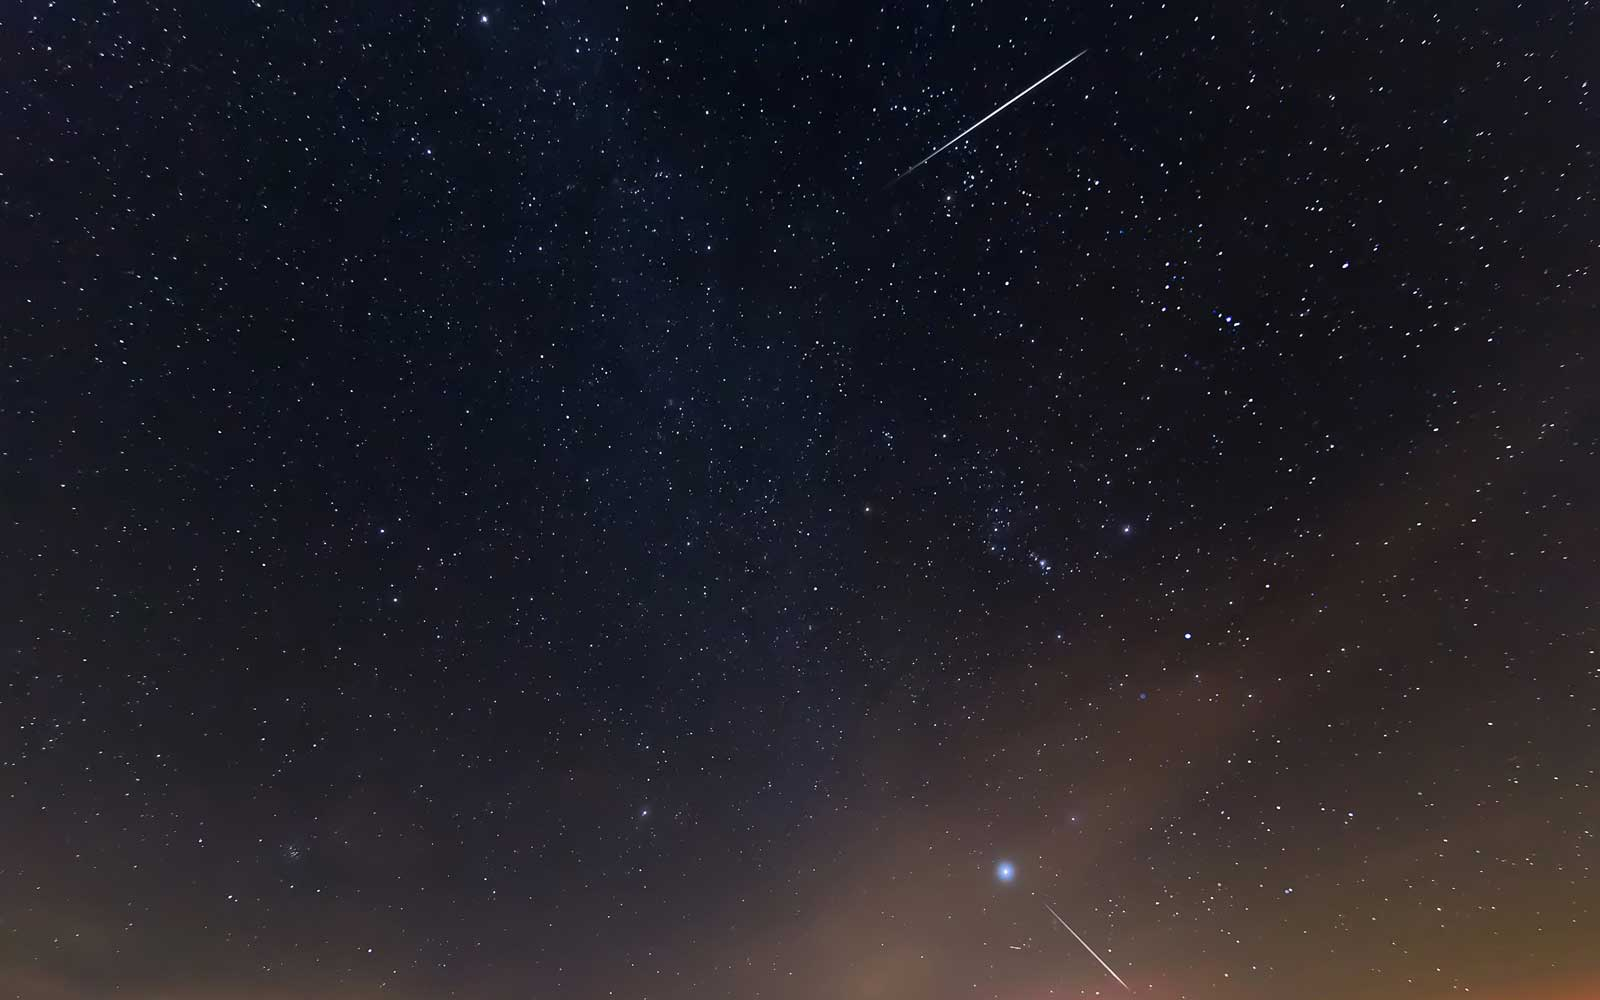 A meteor streaks across the night sky during the Geminid meteor shower over Murat Mountains in Gediz district of Kutahya, Turkey on December 14, 2017.